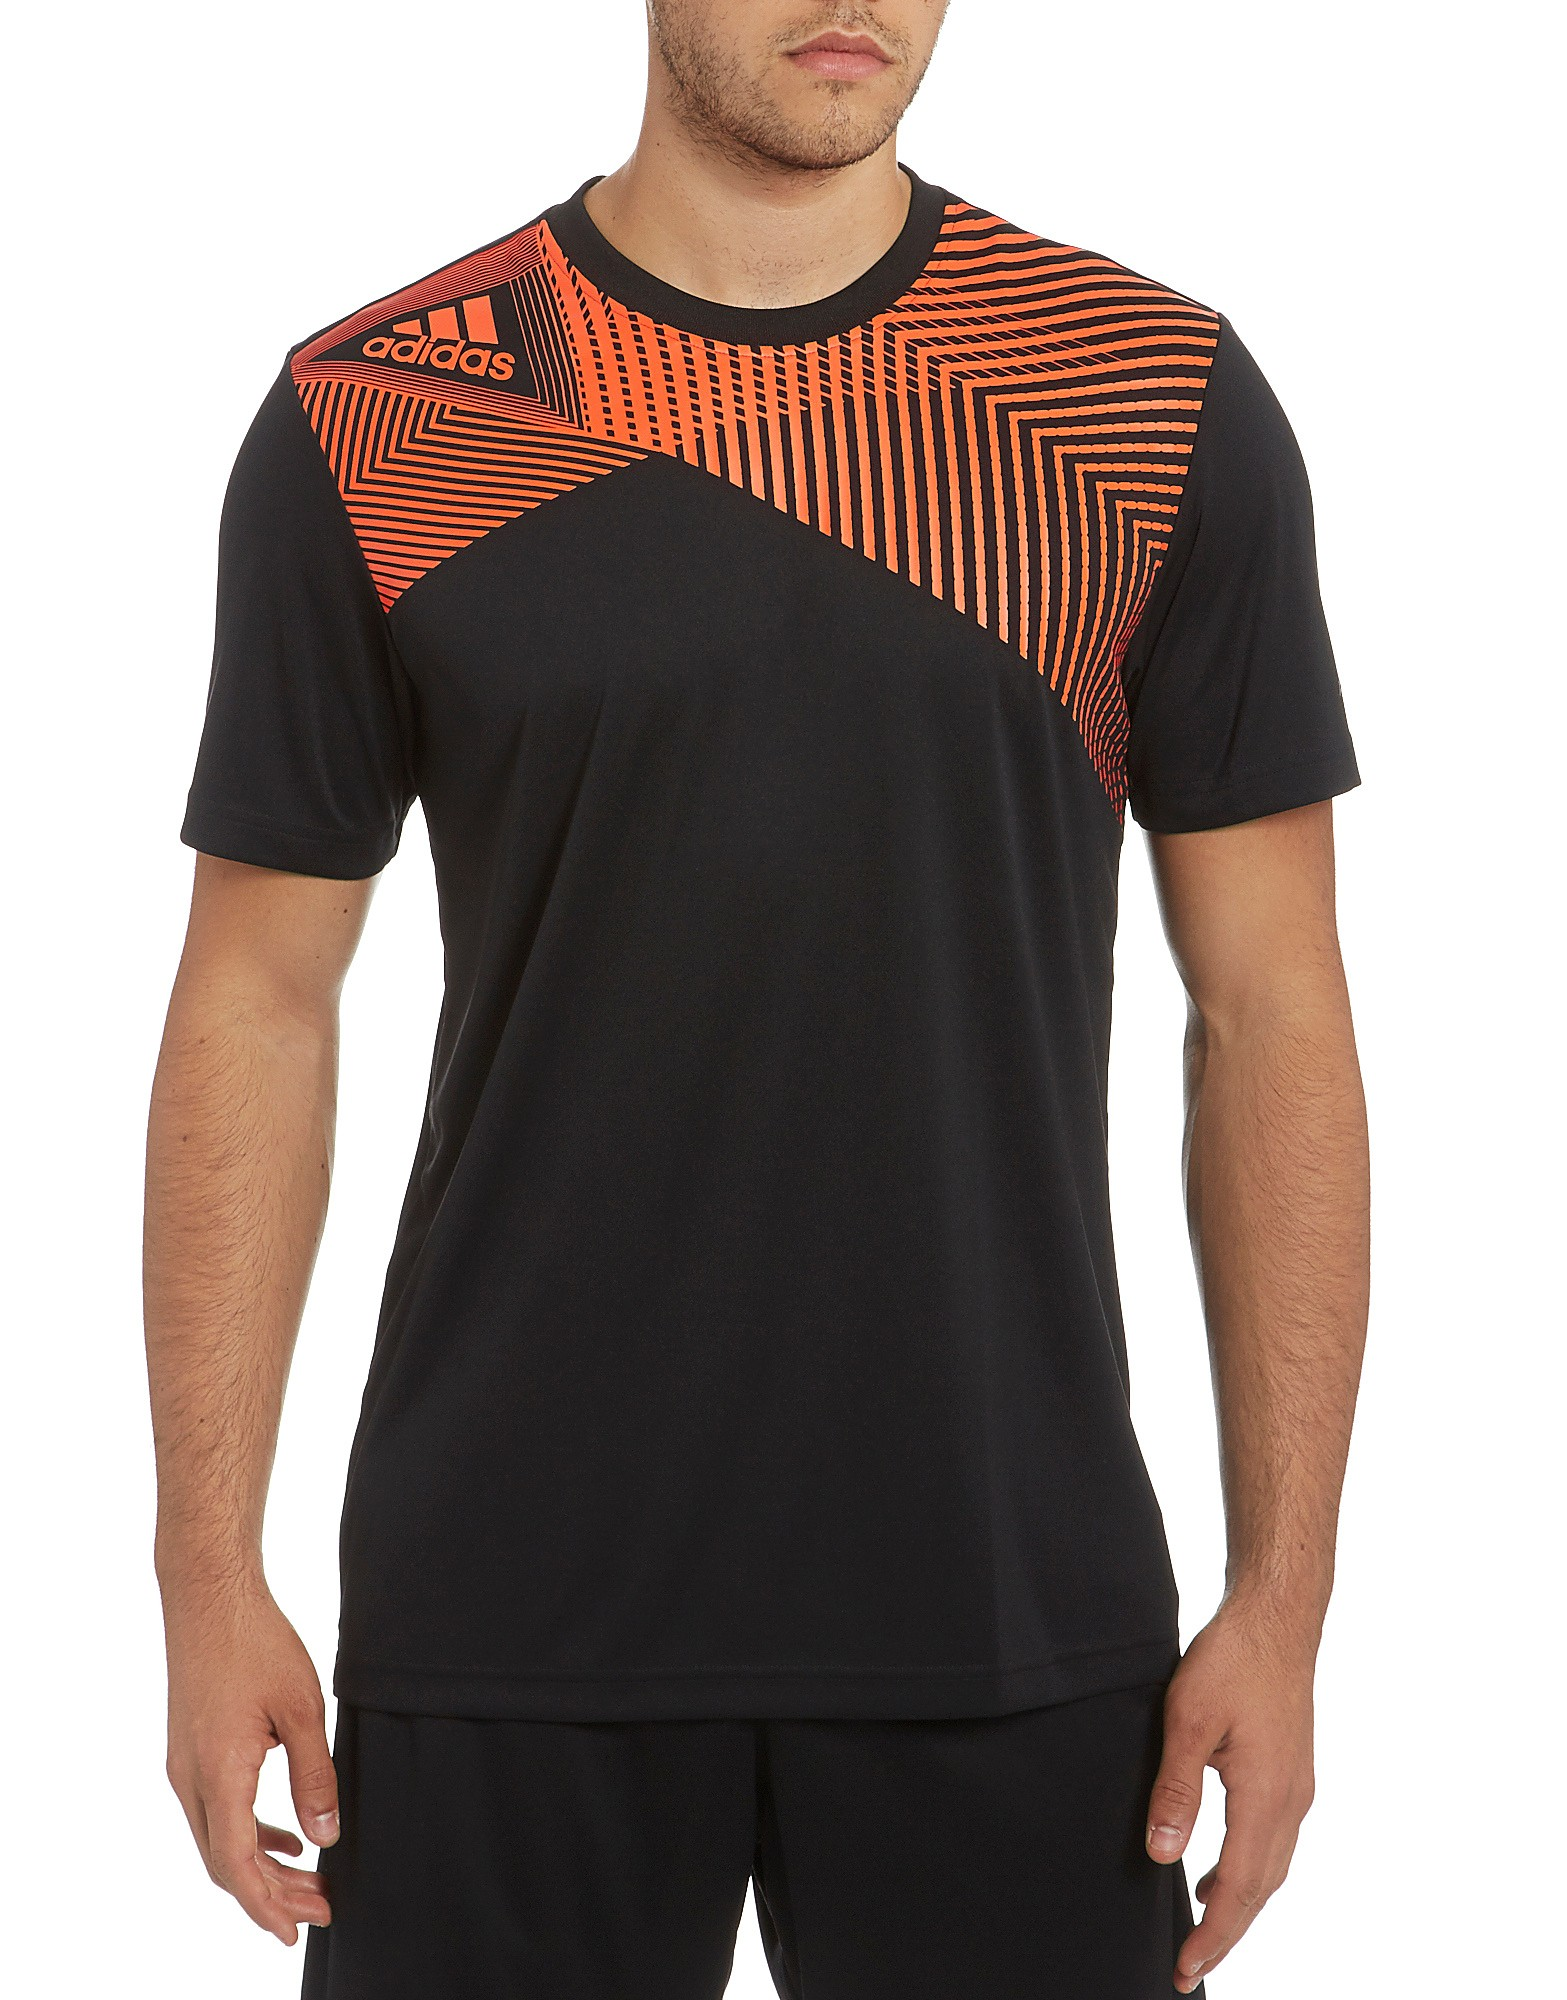 Adidas Predator Training T-Shirt product image